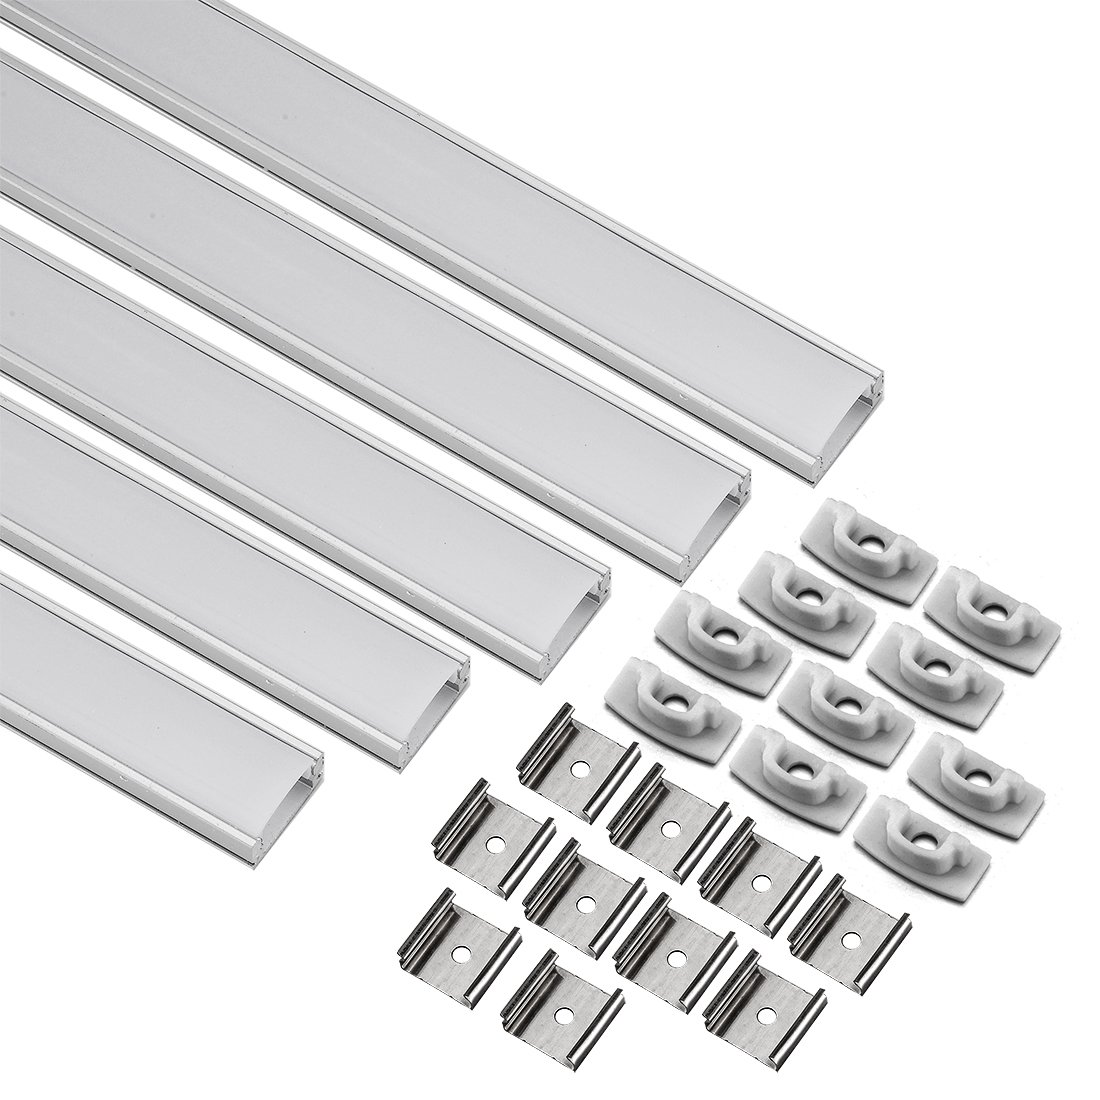 uxcell LED Aluminum Channel - 0.5M/1.64Ft Led Channels and Milky Covers with End Caps and Mounting Clips for LED Light Strip Mounting (CN509, 0.5mx17.4mmx7mm) - 5 Packs